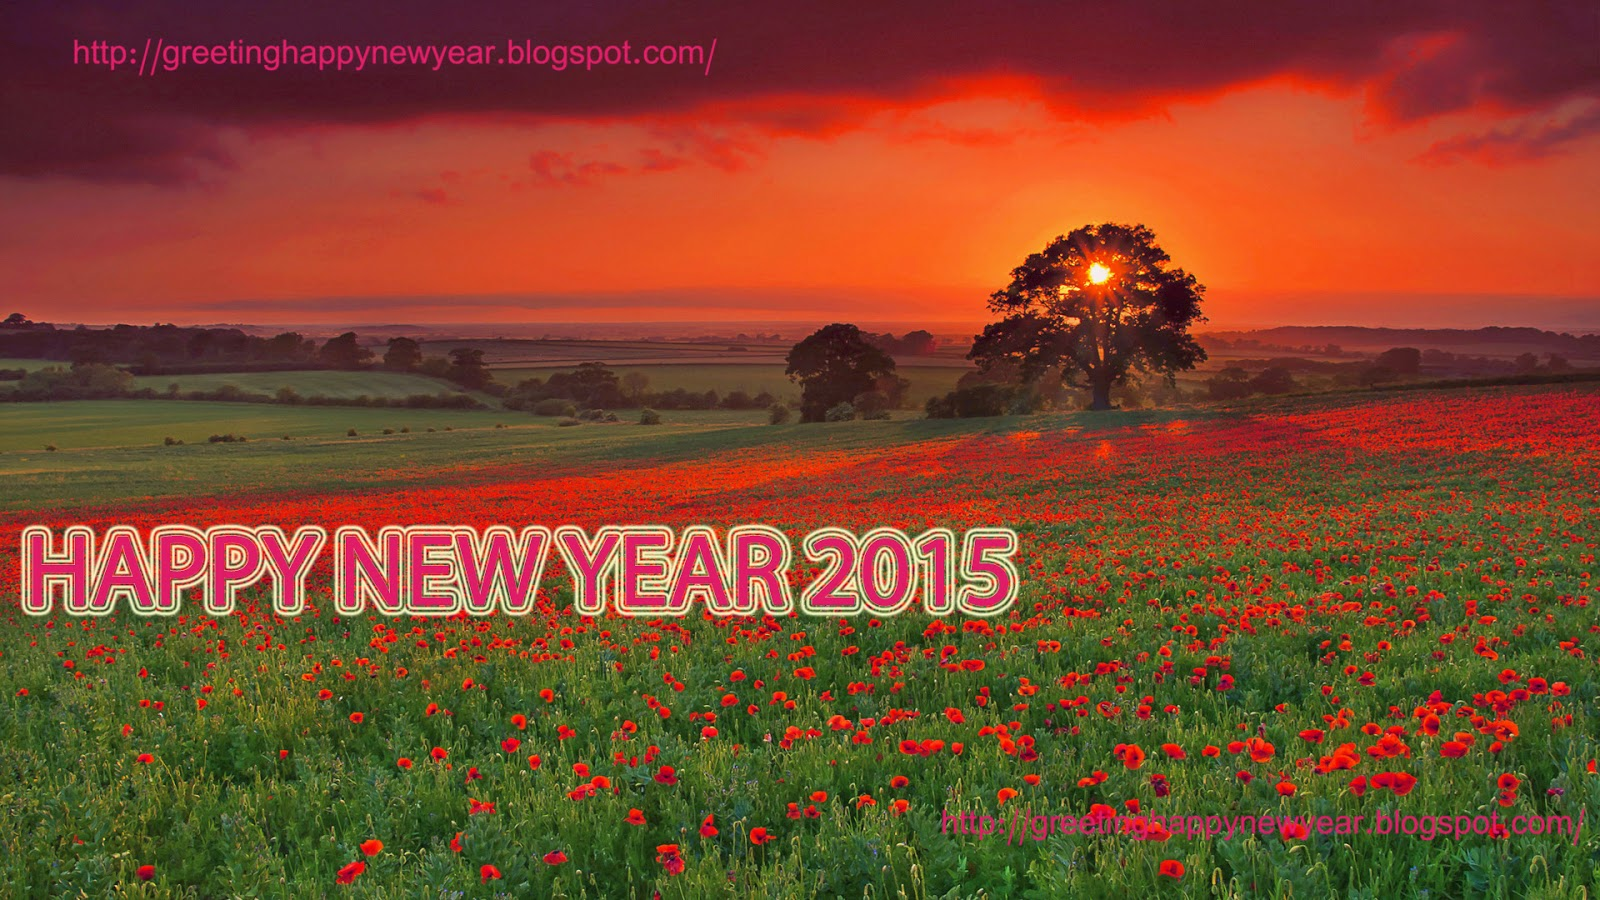 Happy New Year 2015 Wallpapers - HD Picture Latest Free Download